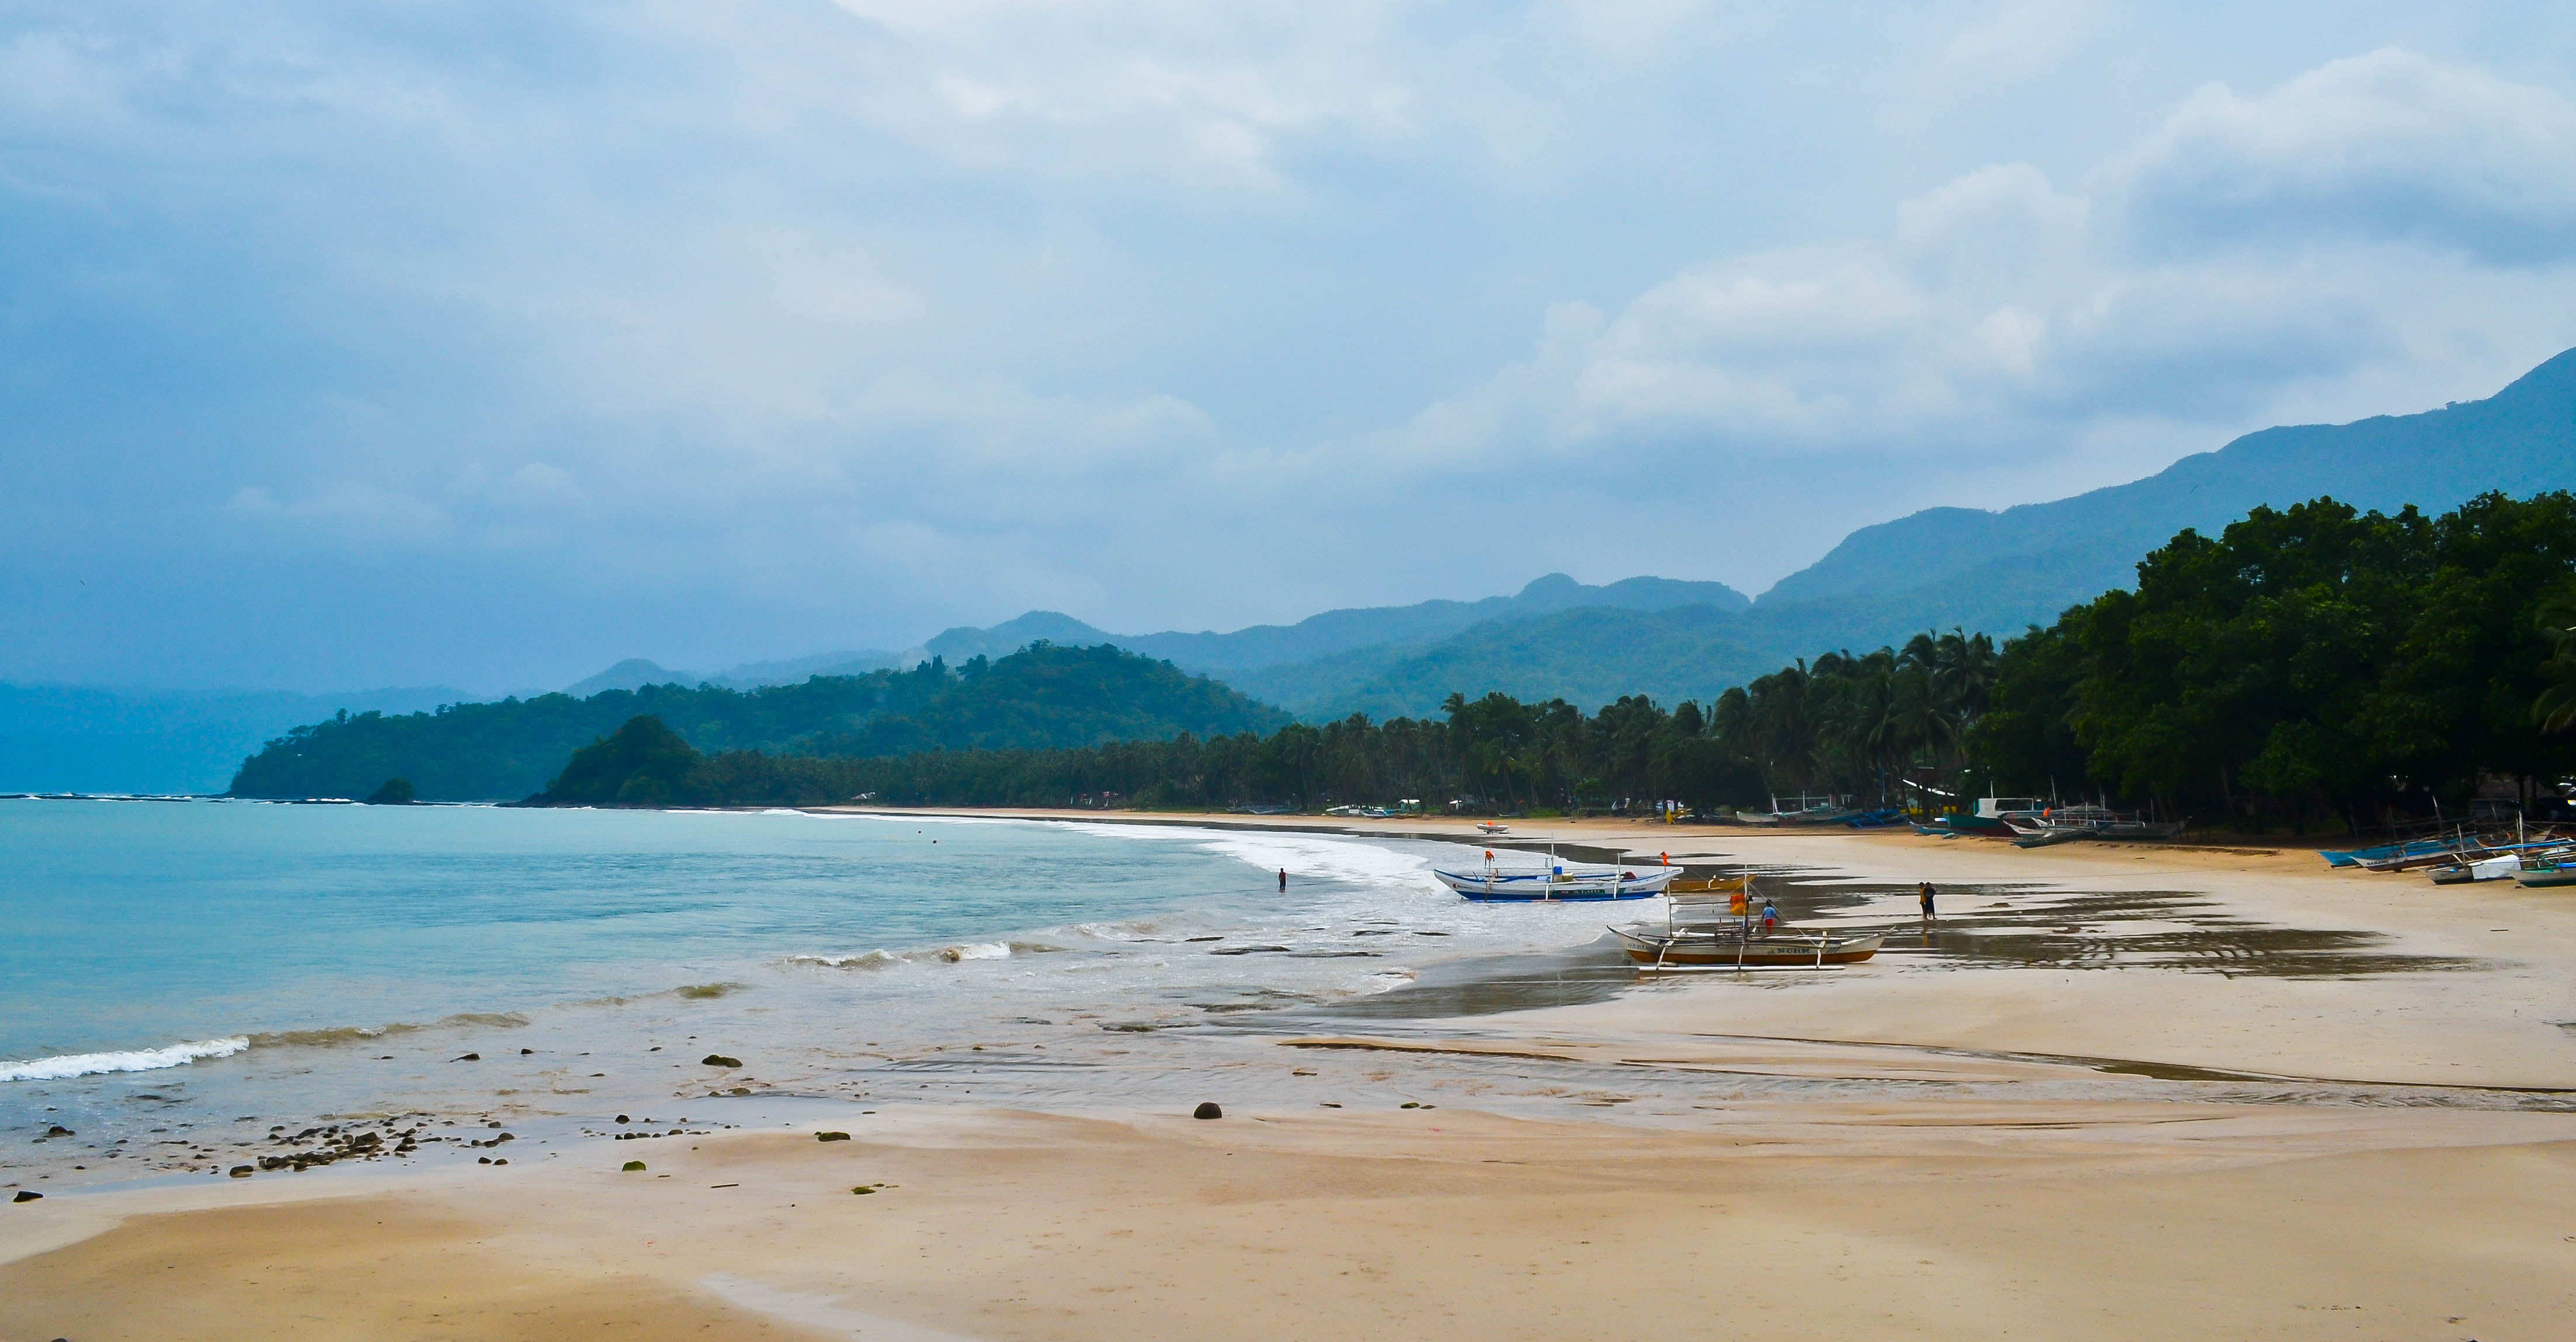 Join the locals at Sabang Beach